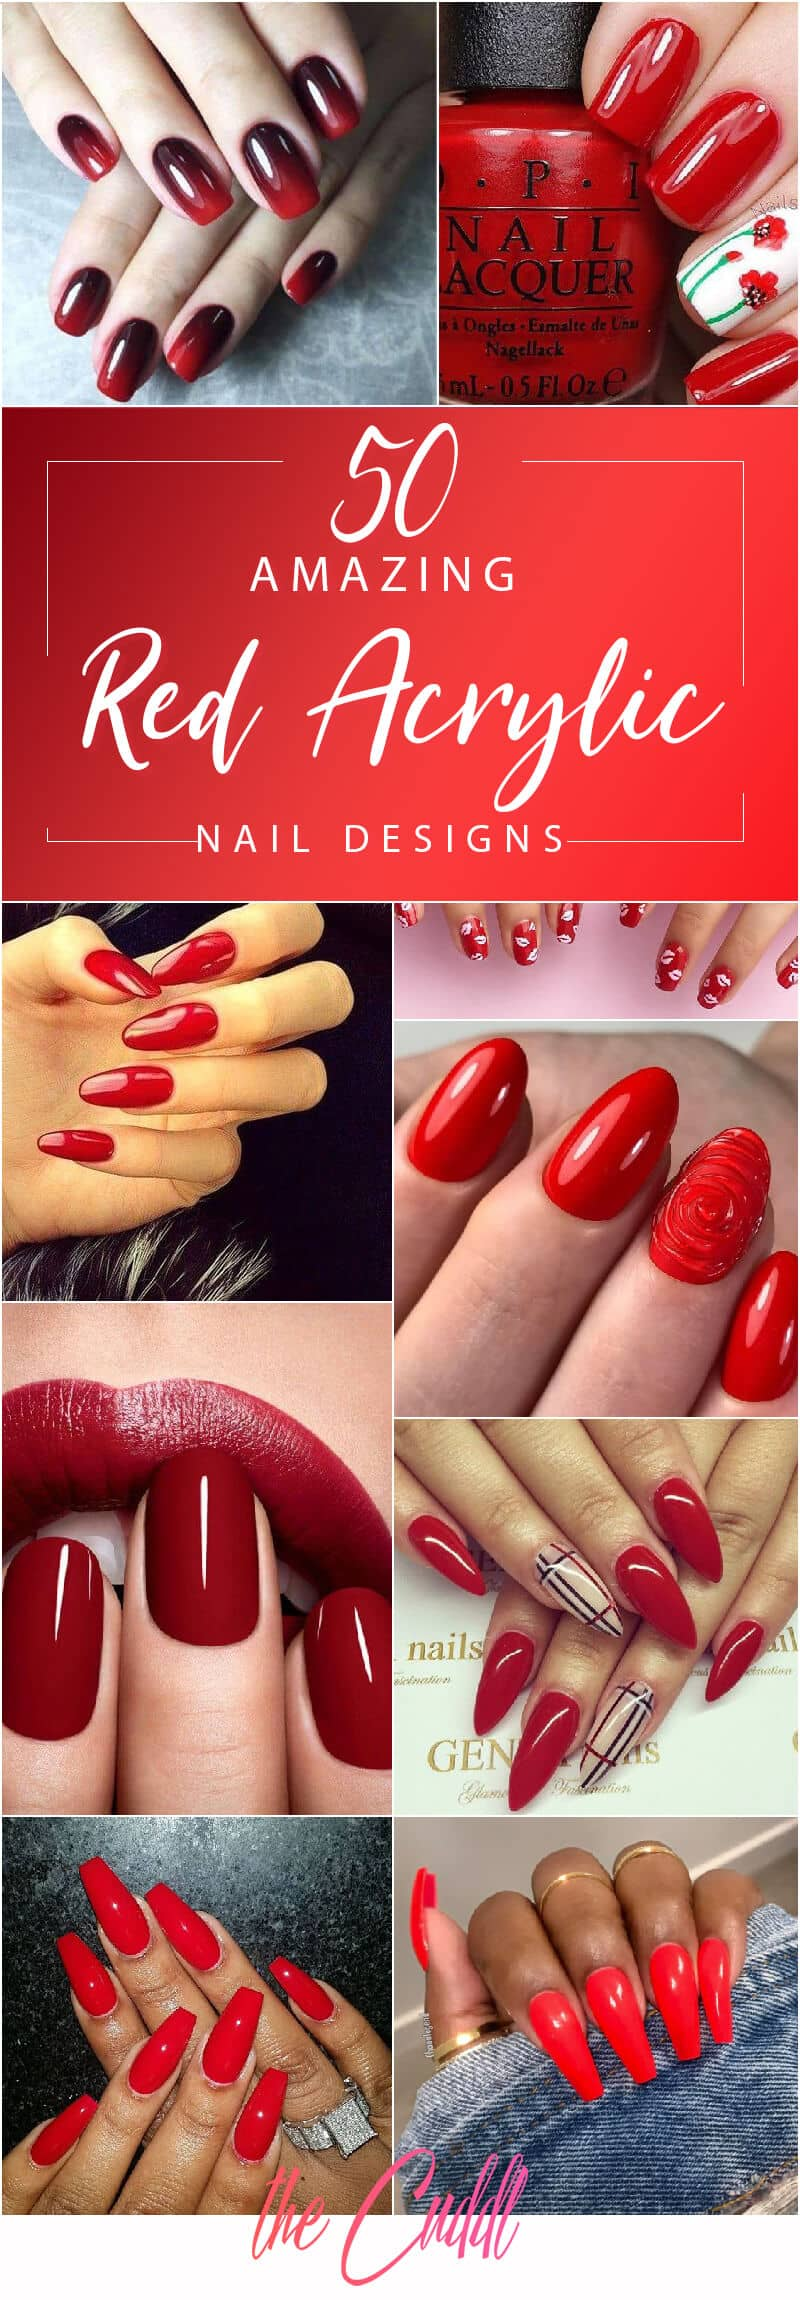 Creative Red Acrylic Nail Designs to Inspire You